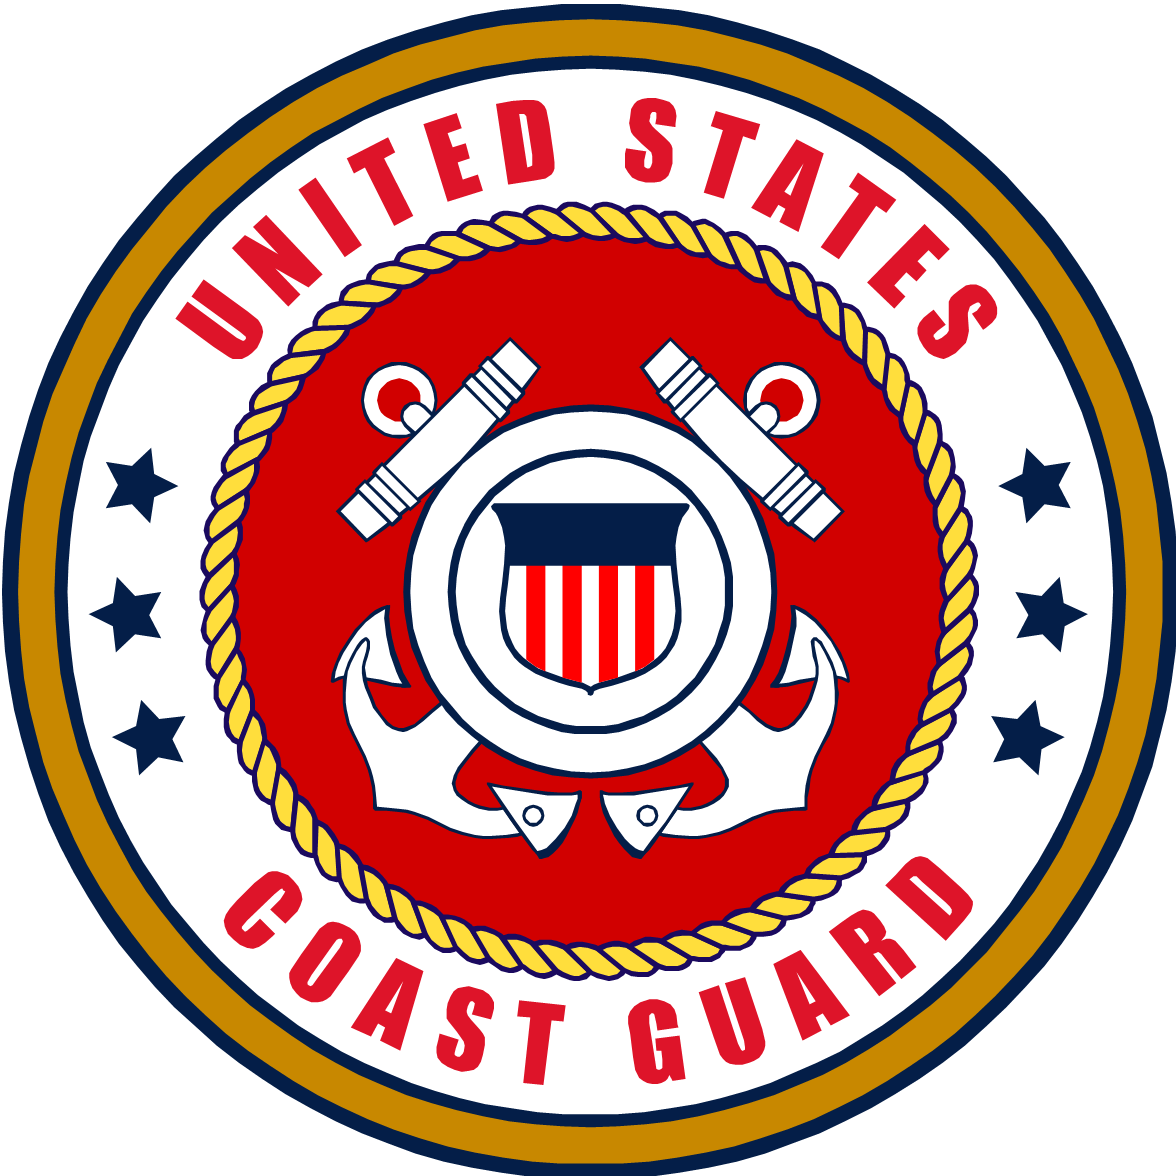 us coast guard essay This photo essay will cover the coast guard patrol craft which served from the   there were 17 harbor cutters and launches on the 1915 us coast guard.